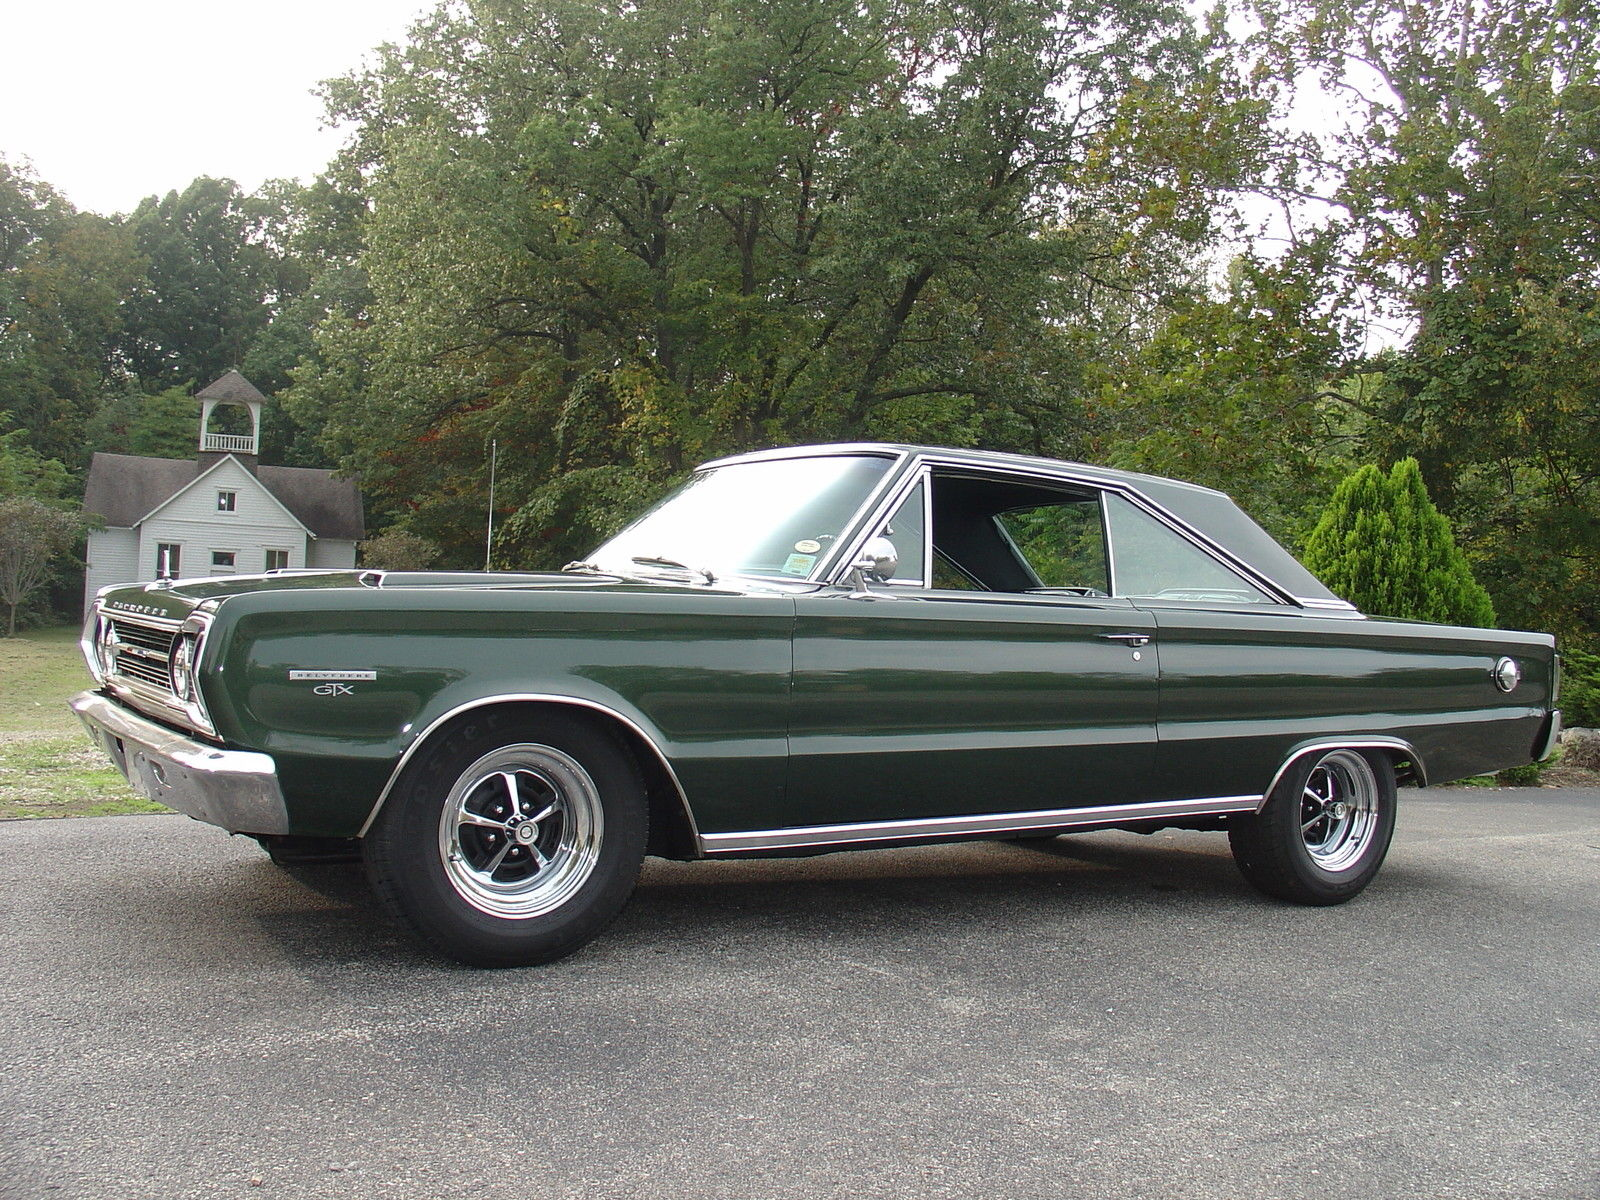 https://i0.wp.com/moparblog.com/wp-content/uploads/2014/02/1967-Plymouth-GTX-side.jpg